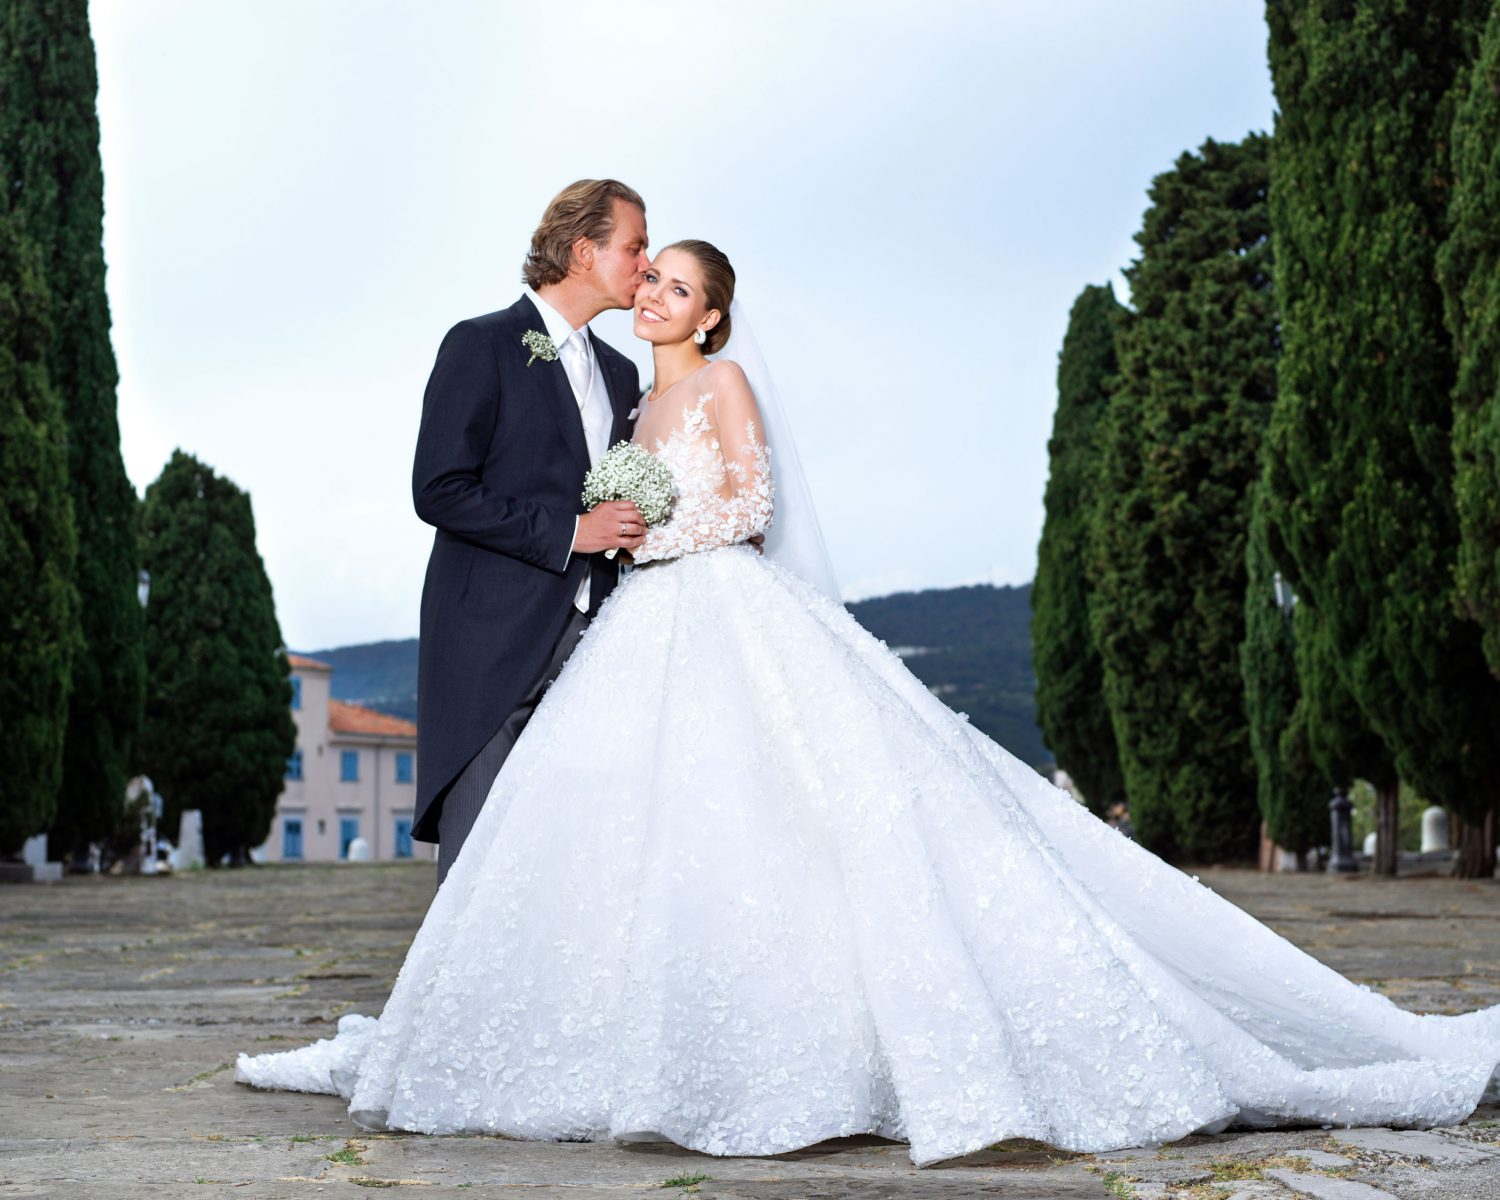 Victoria Swarovski and Werner Muerz's wedding